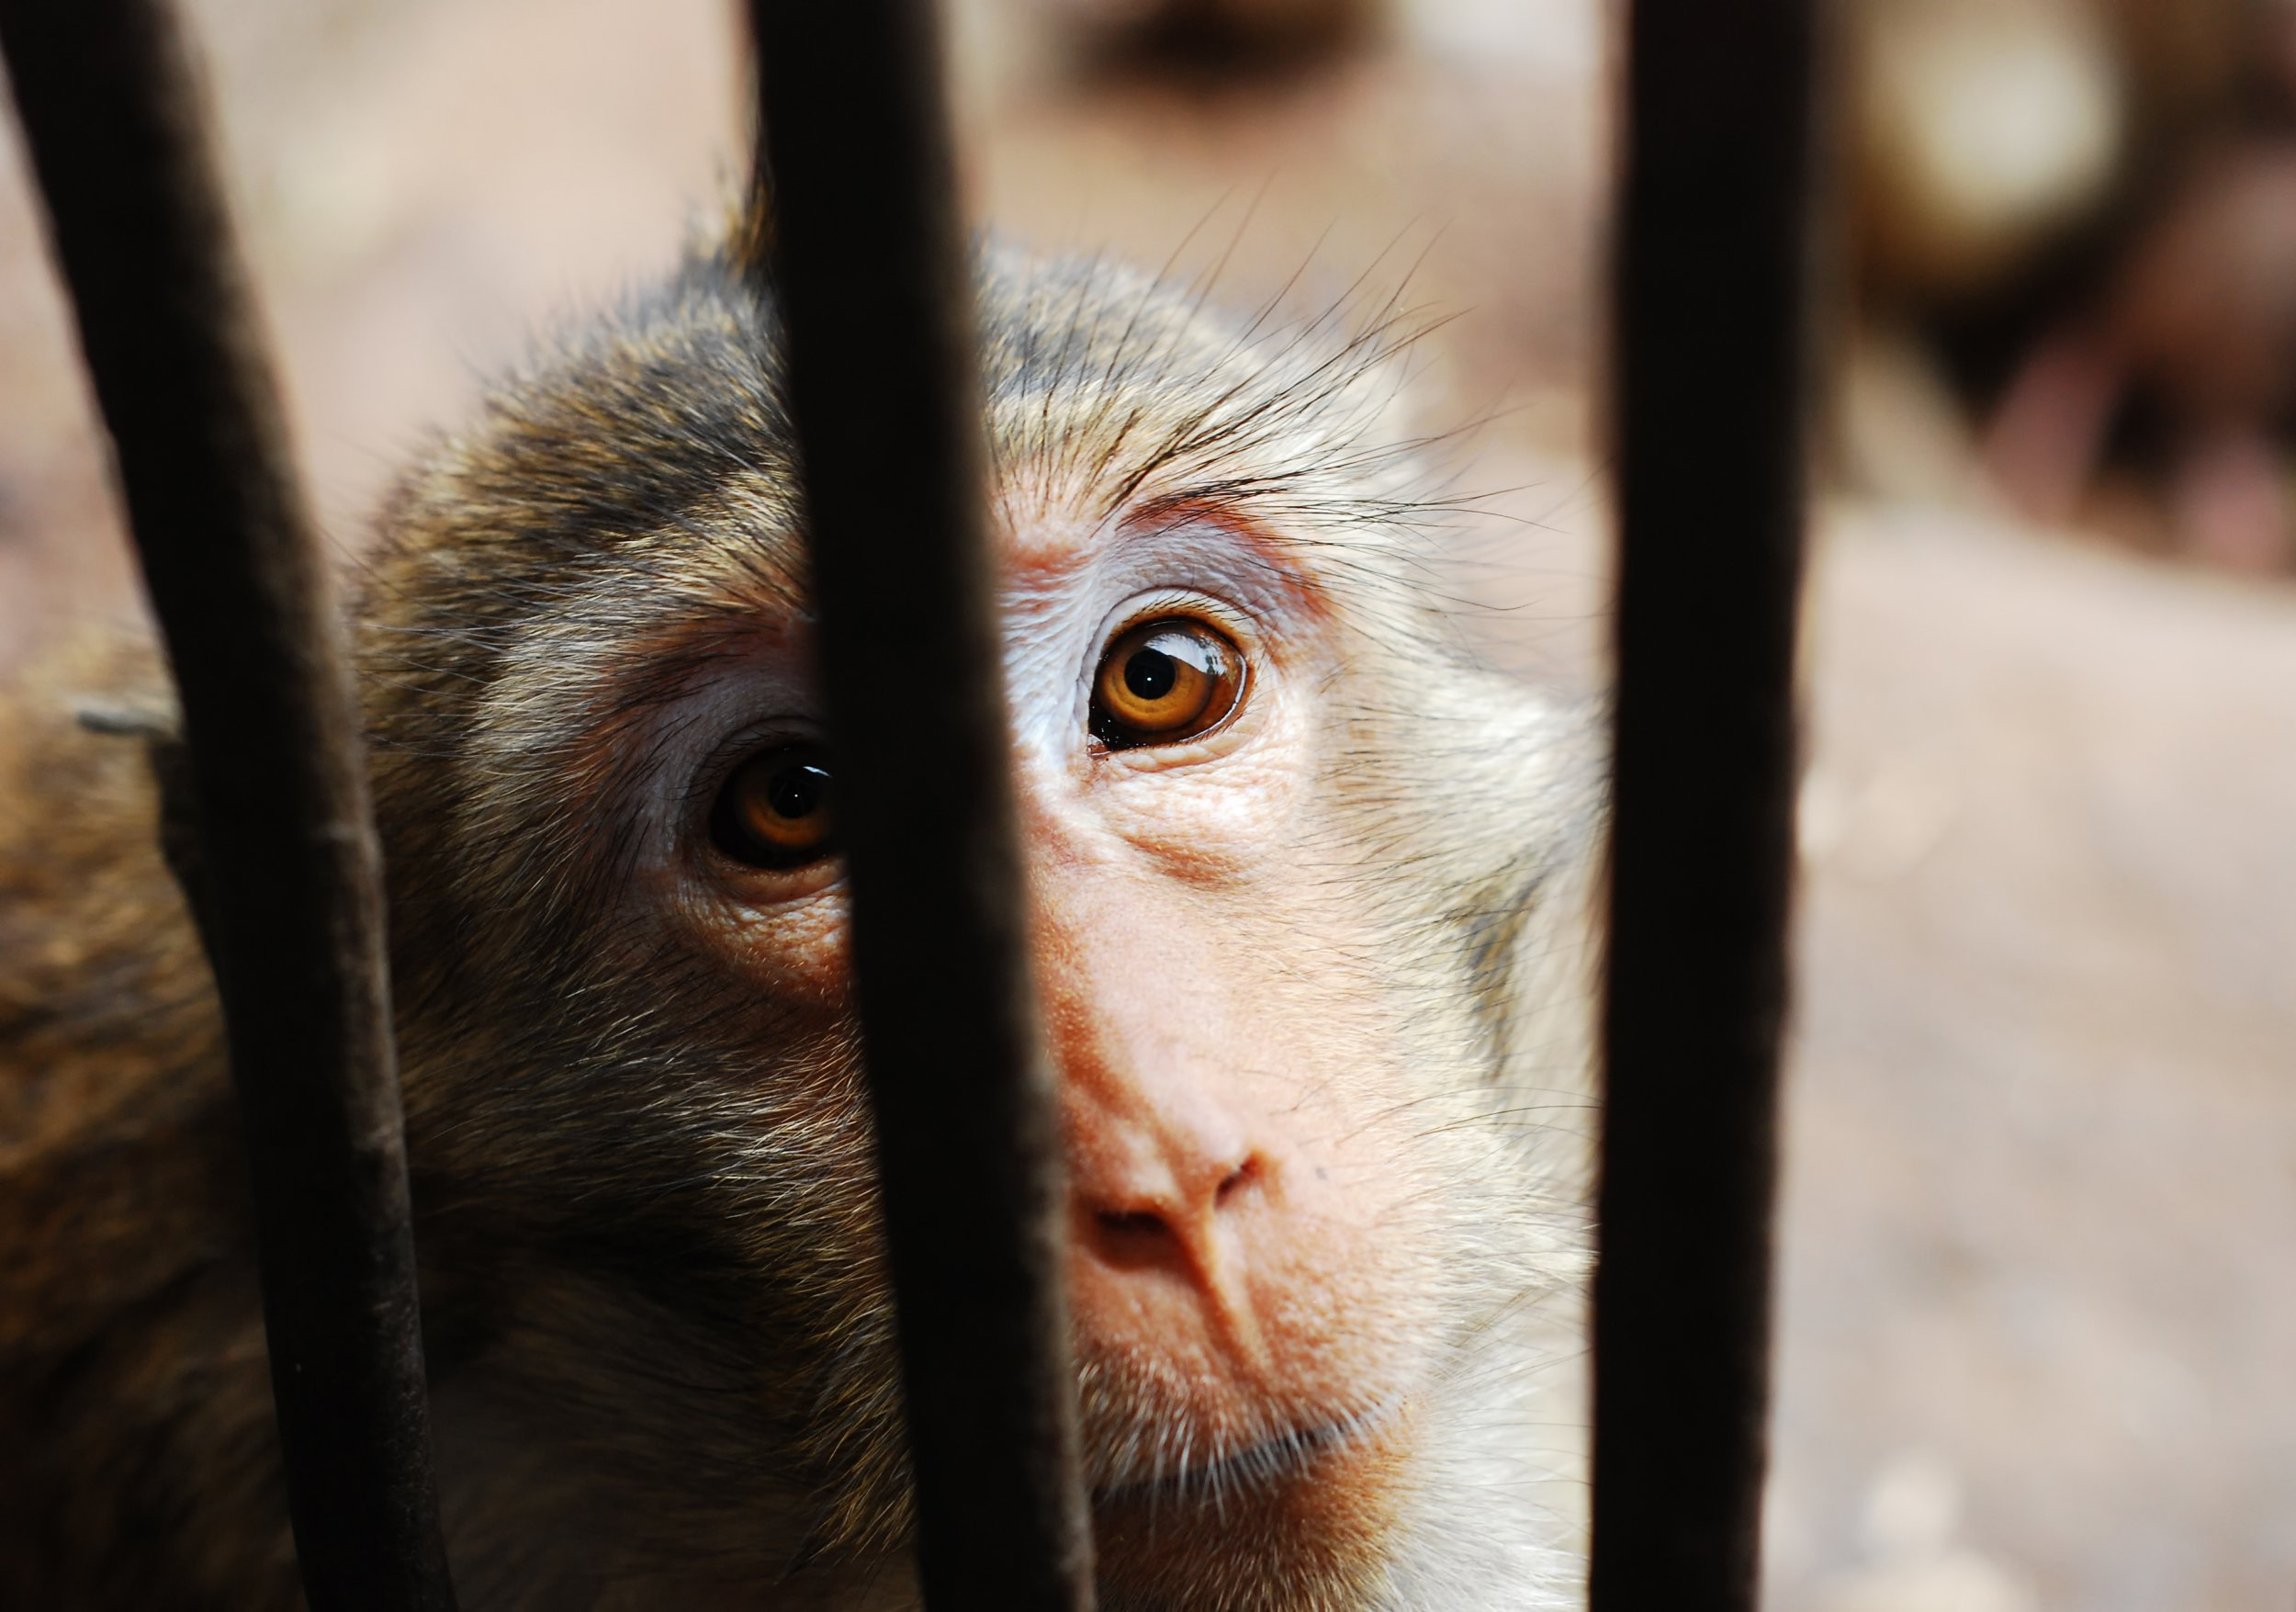 Chinese scientists create super-intelligent monkeys by injecting human DNA into their brains